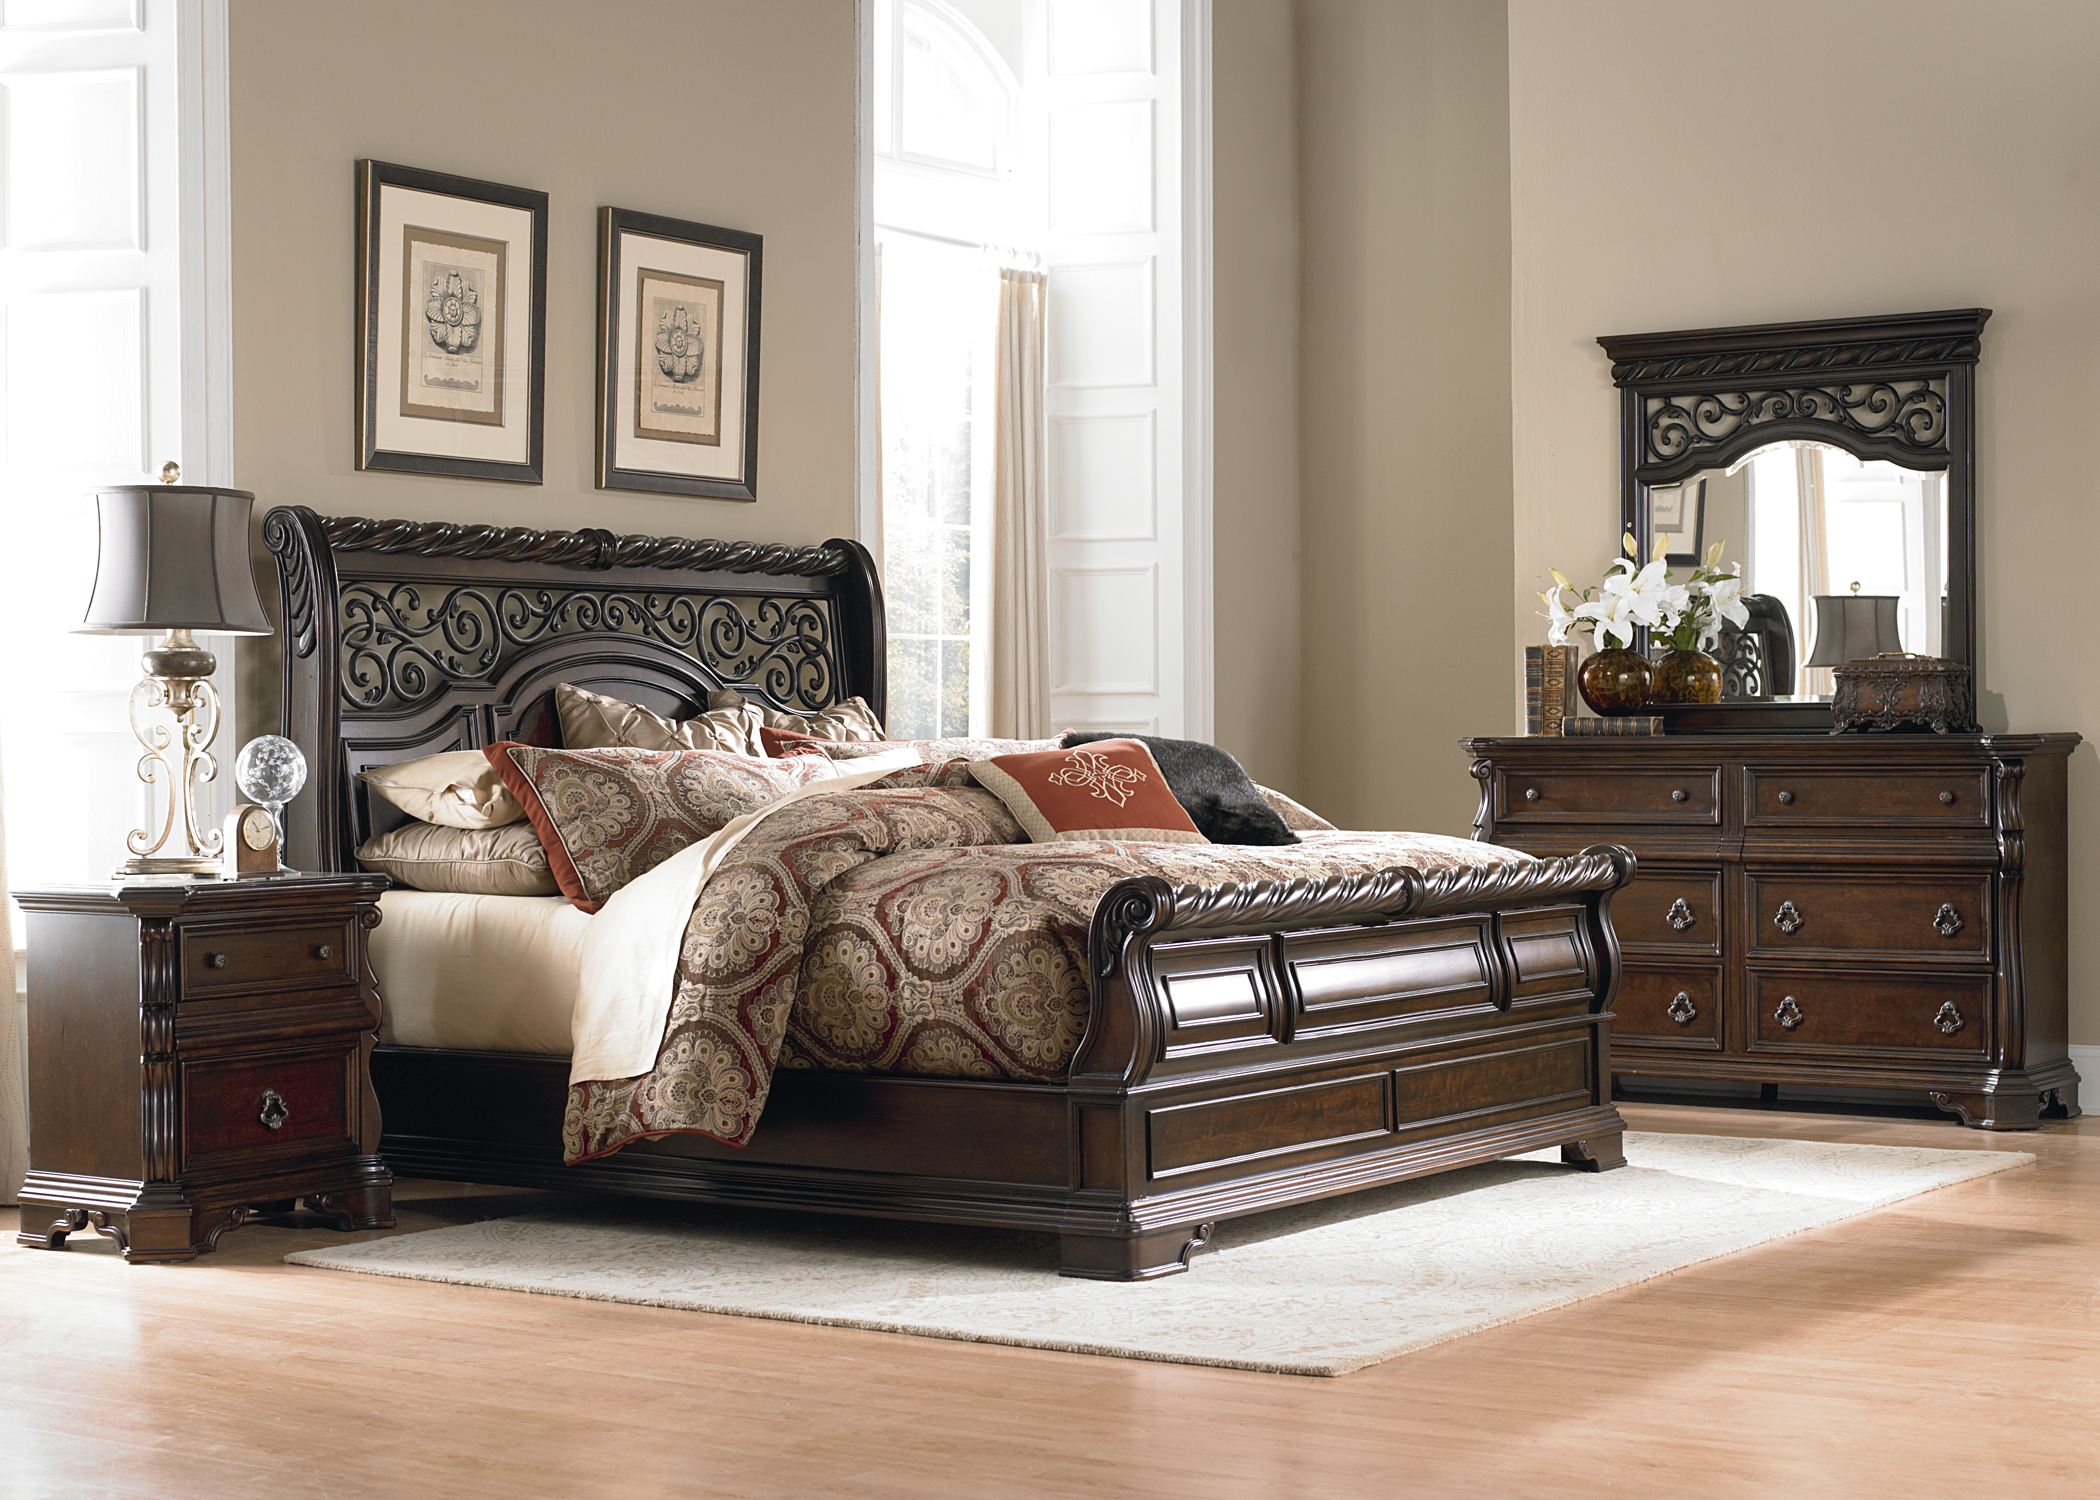 Arbor place sleigh bedroom set from liberty 575 br qsl coleman furniture